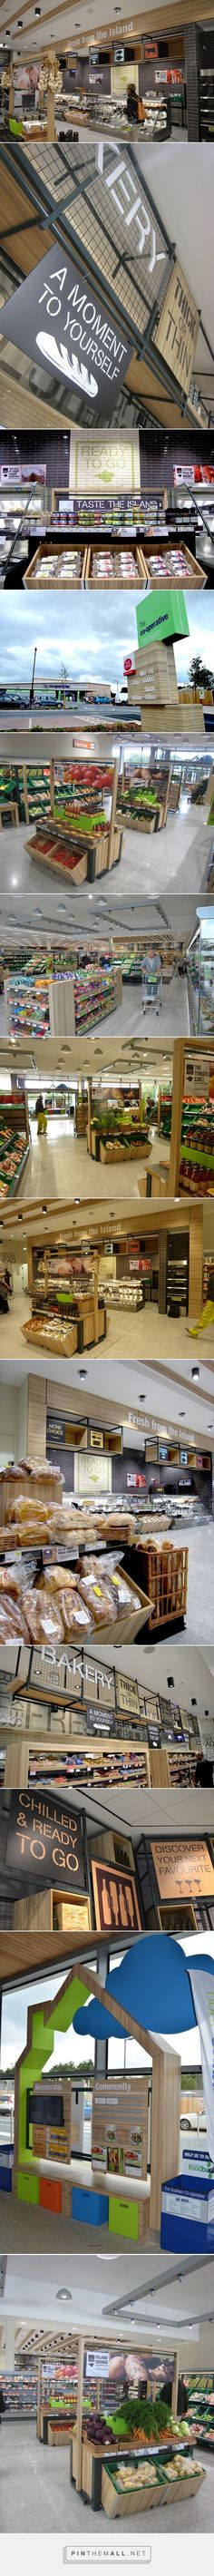 Design showcase: the Isle of Wight's local Co-Operative - Retail Design World - created via http://pinthemall.net